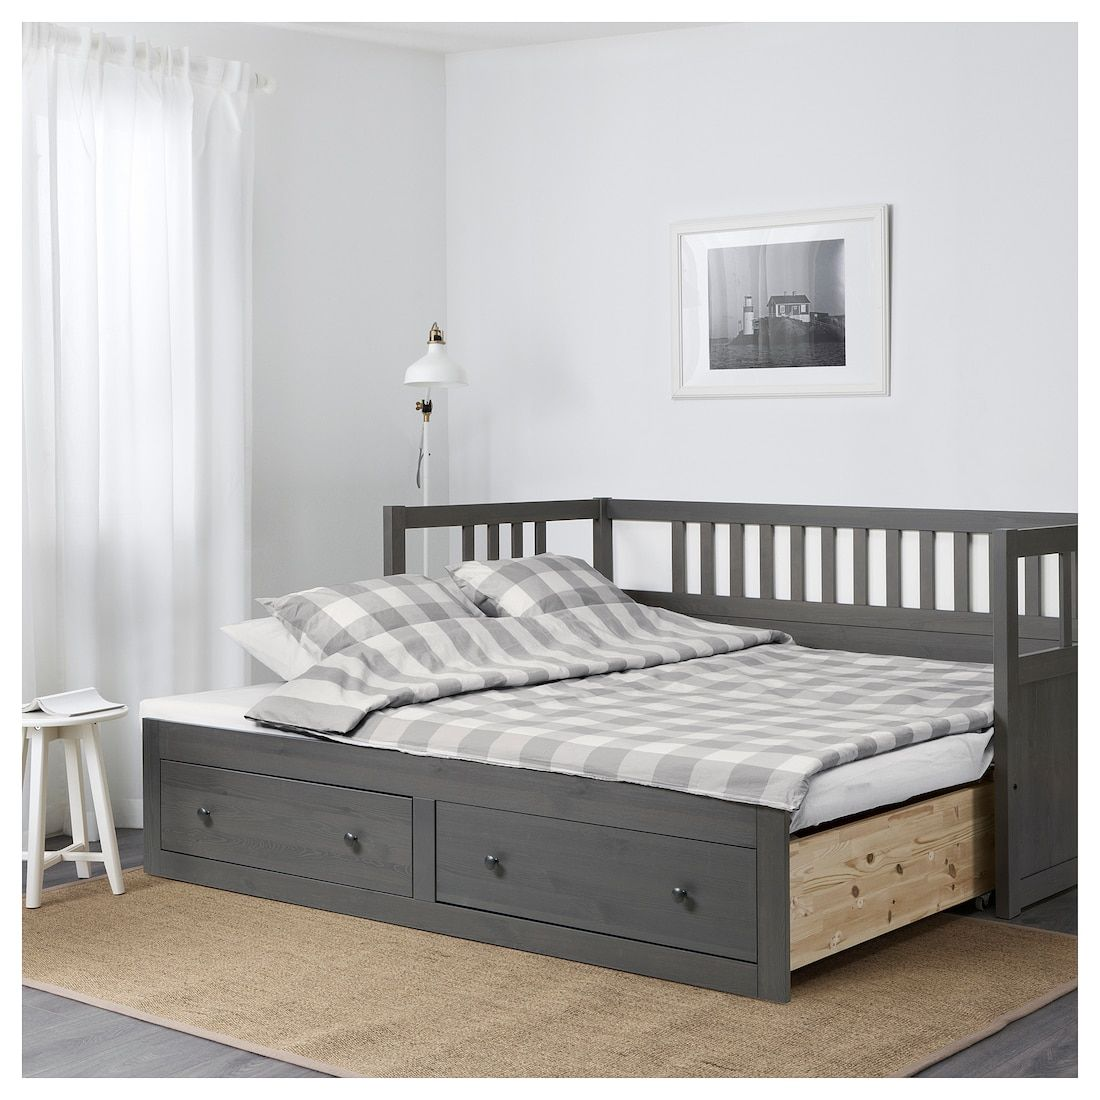 - HEMNES Daybed With 2 Drawers/2 Mattresses - Gray Stained